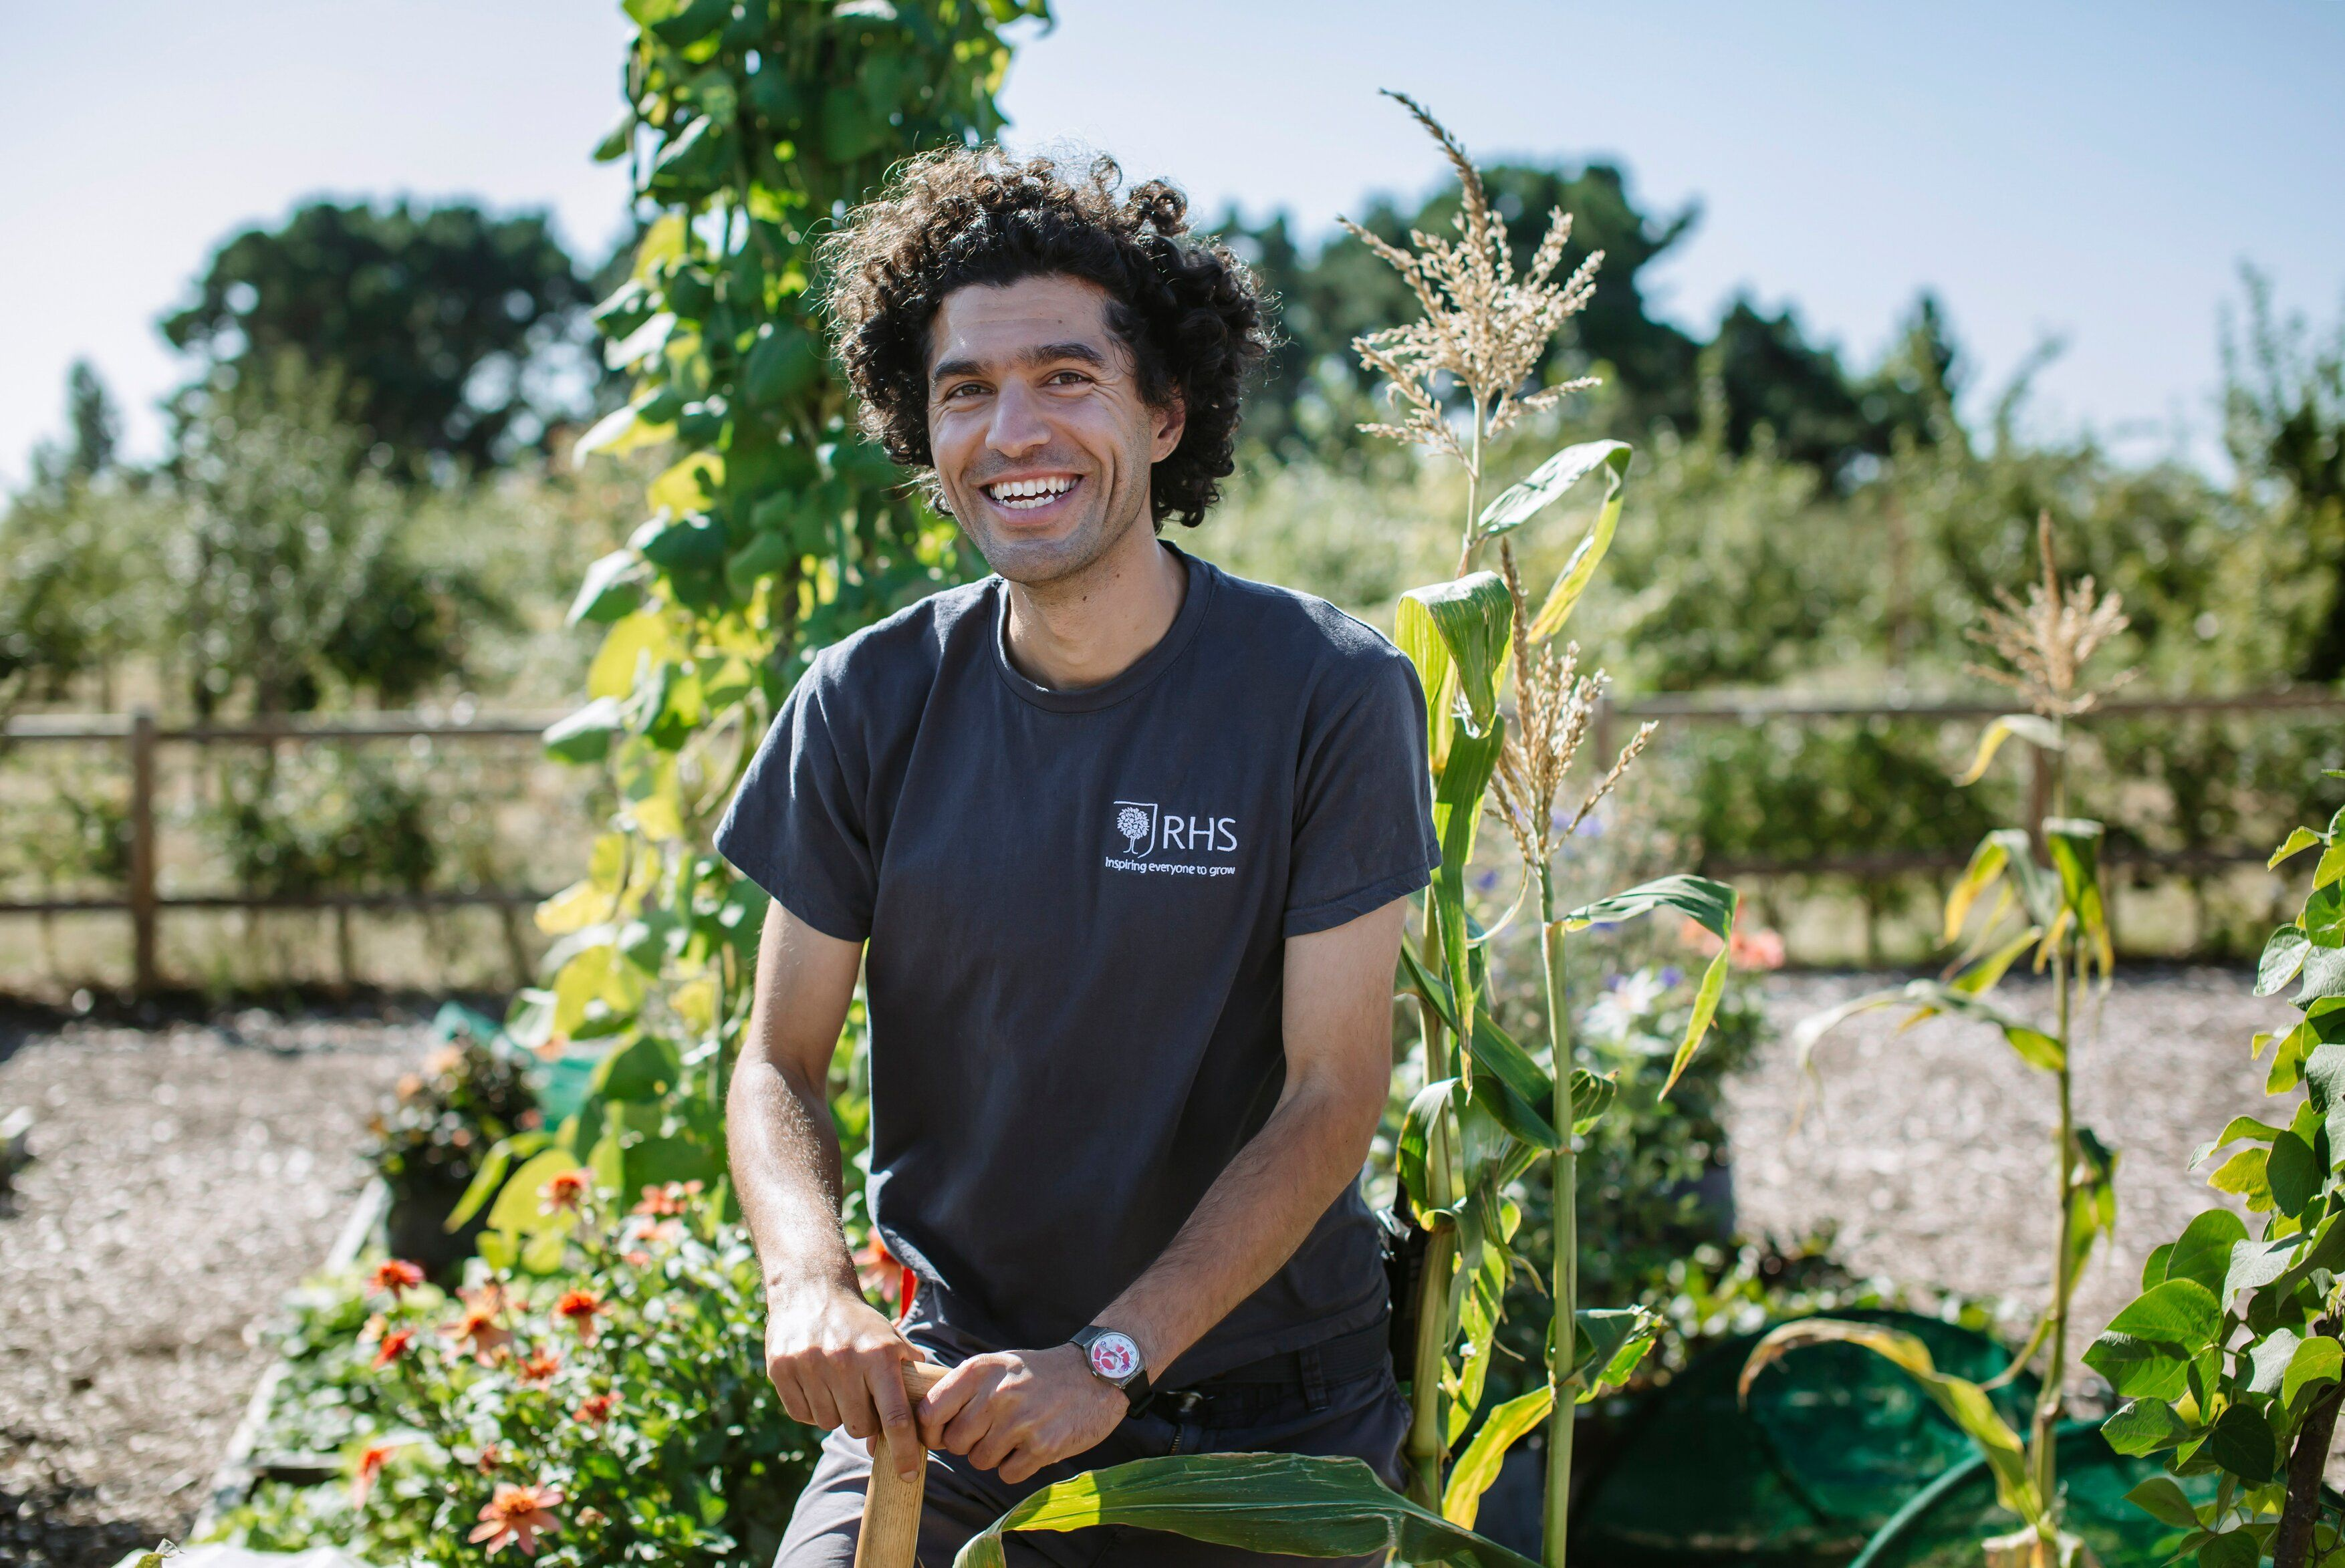 The Royal Horticultural Society is offering 40 two-year apprenticeships